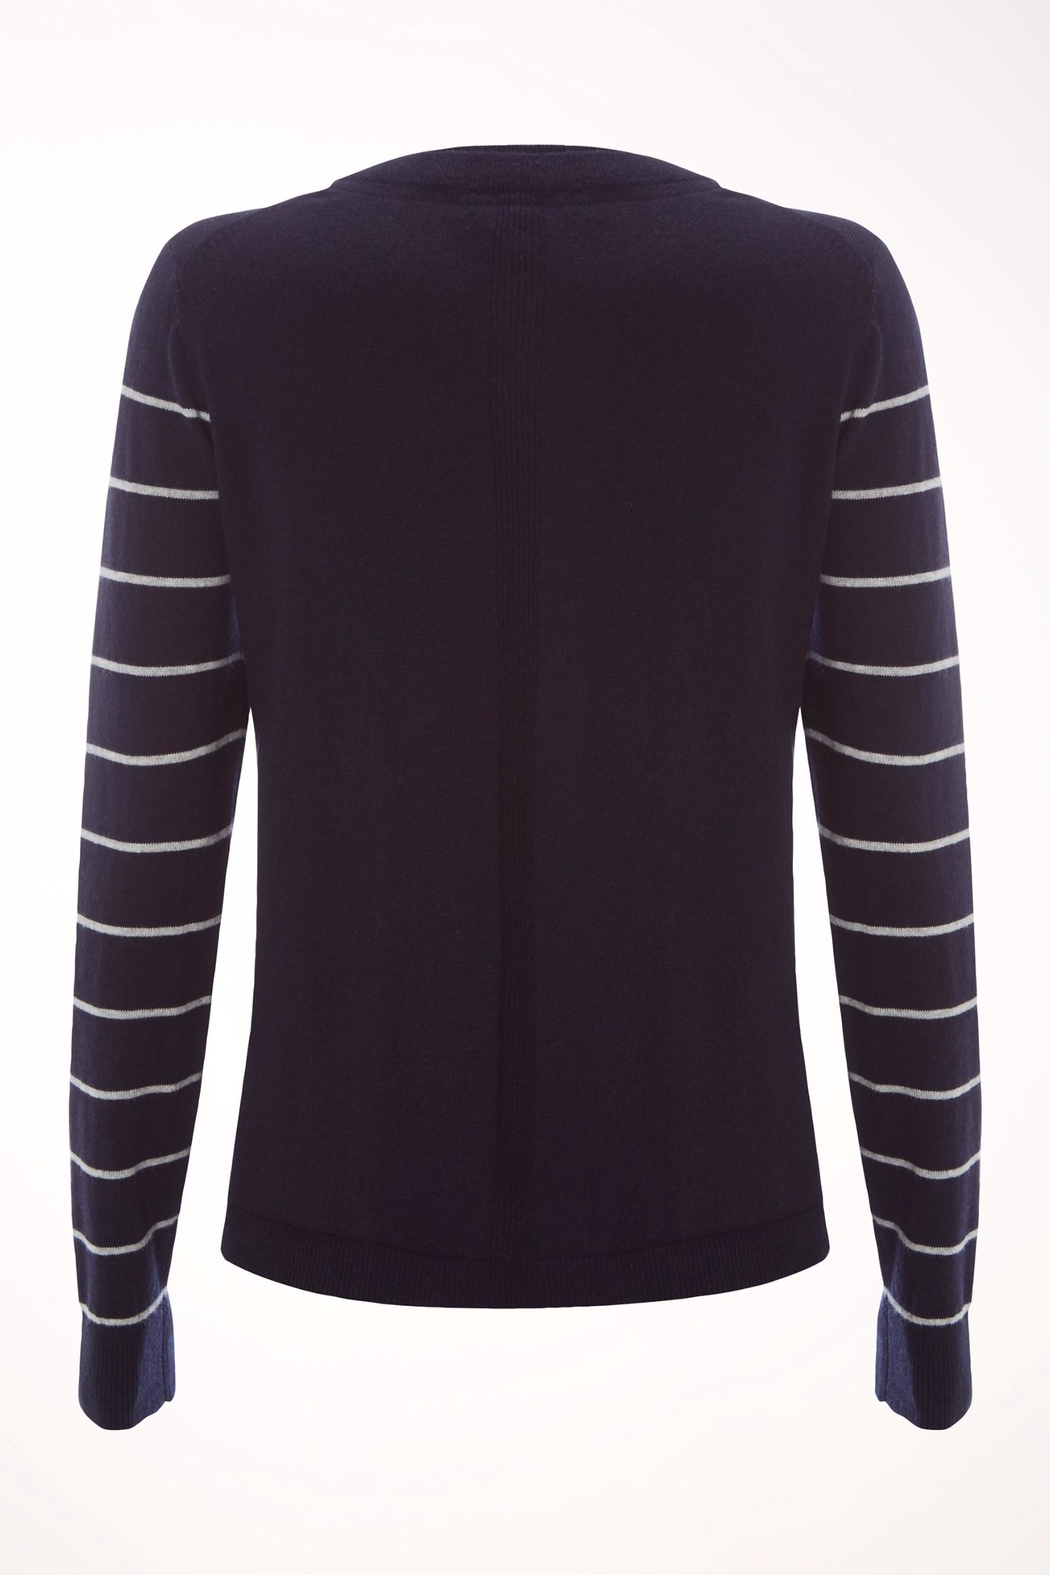 White Stuff Navy Meadow Sweater - Front Full Image